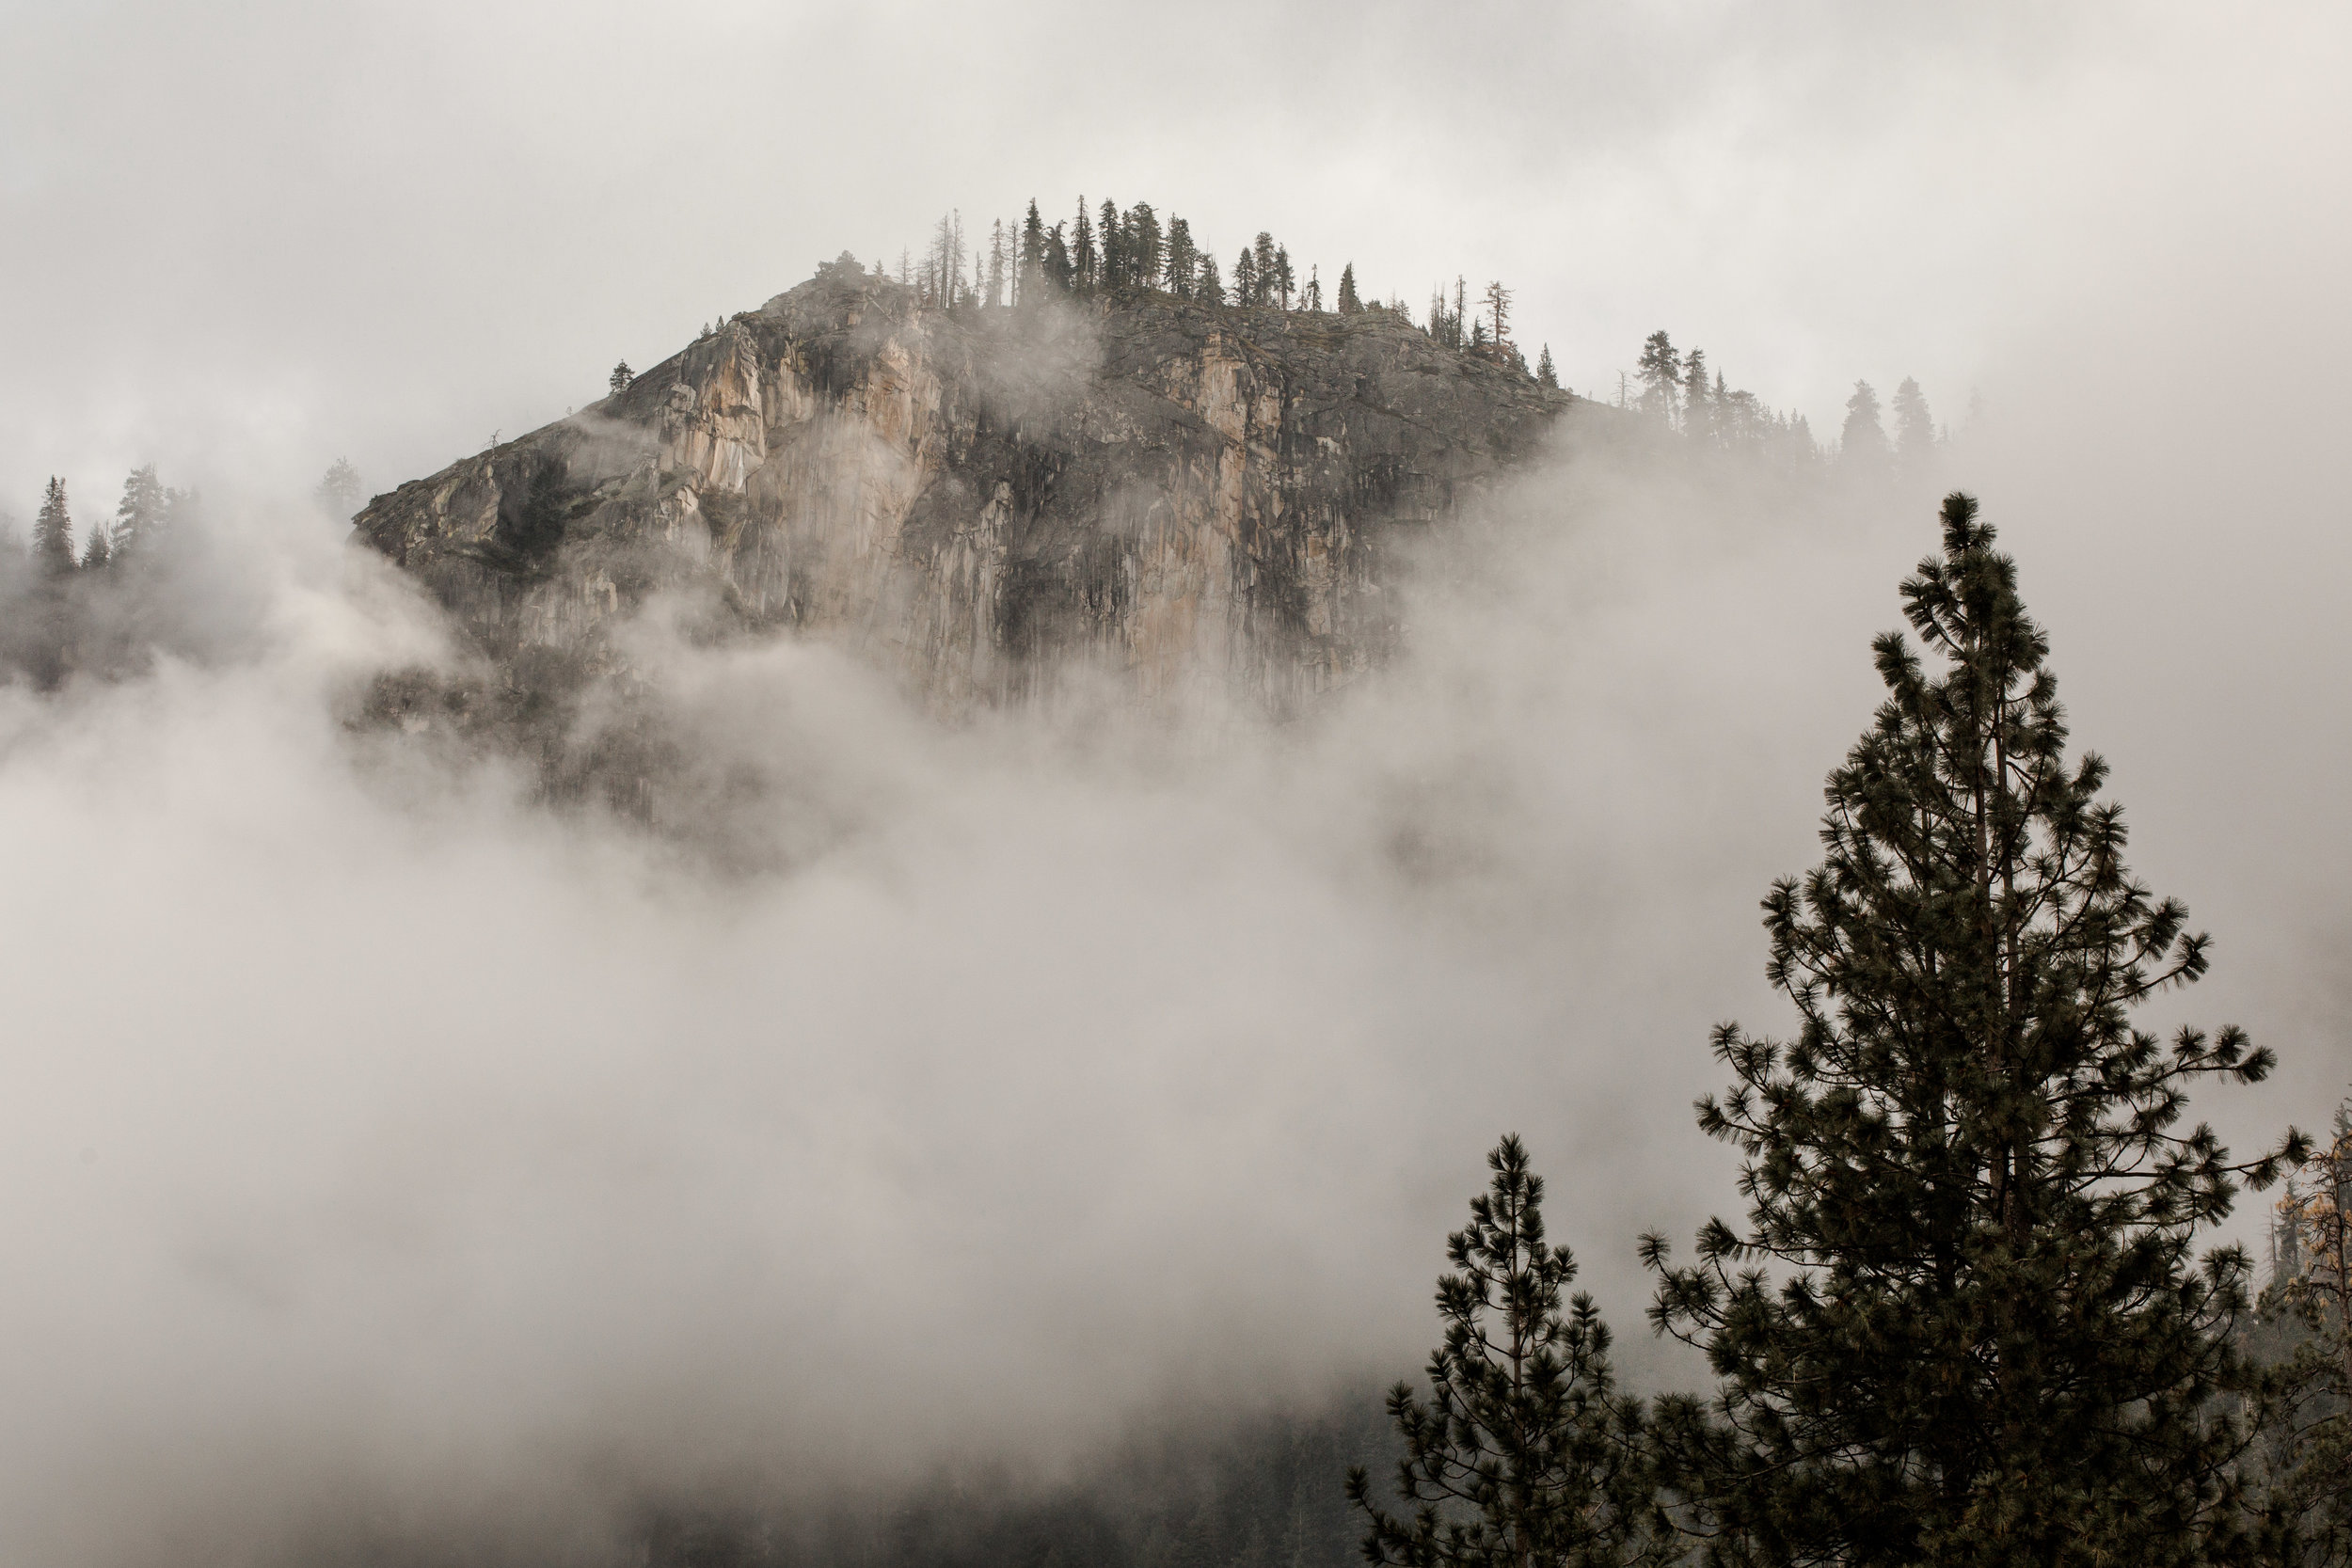 nicole-daacke-photography-yousemite-national-park-elopement-photographer-winter-cloud-moody-elope-inspiration-yosemite-valley-tunnel-view-winter-cloud-fog-weather-wedding-photos-2.jpg